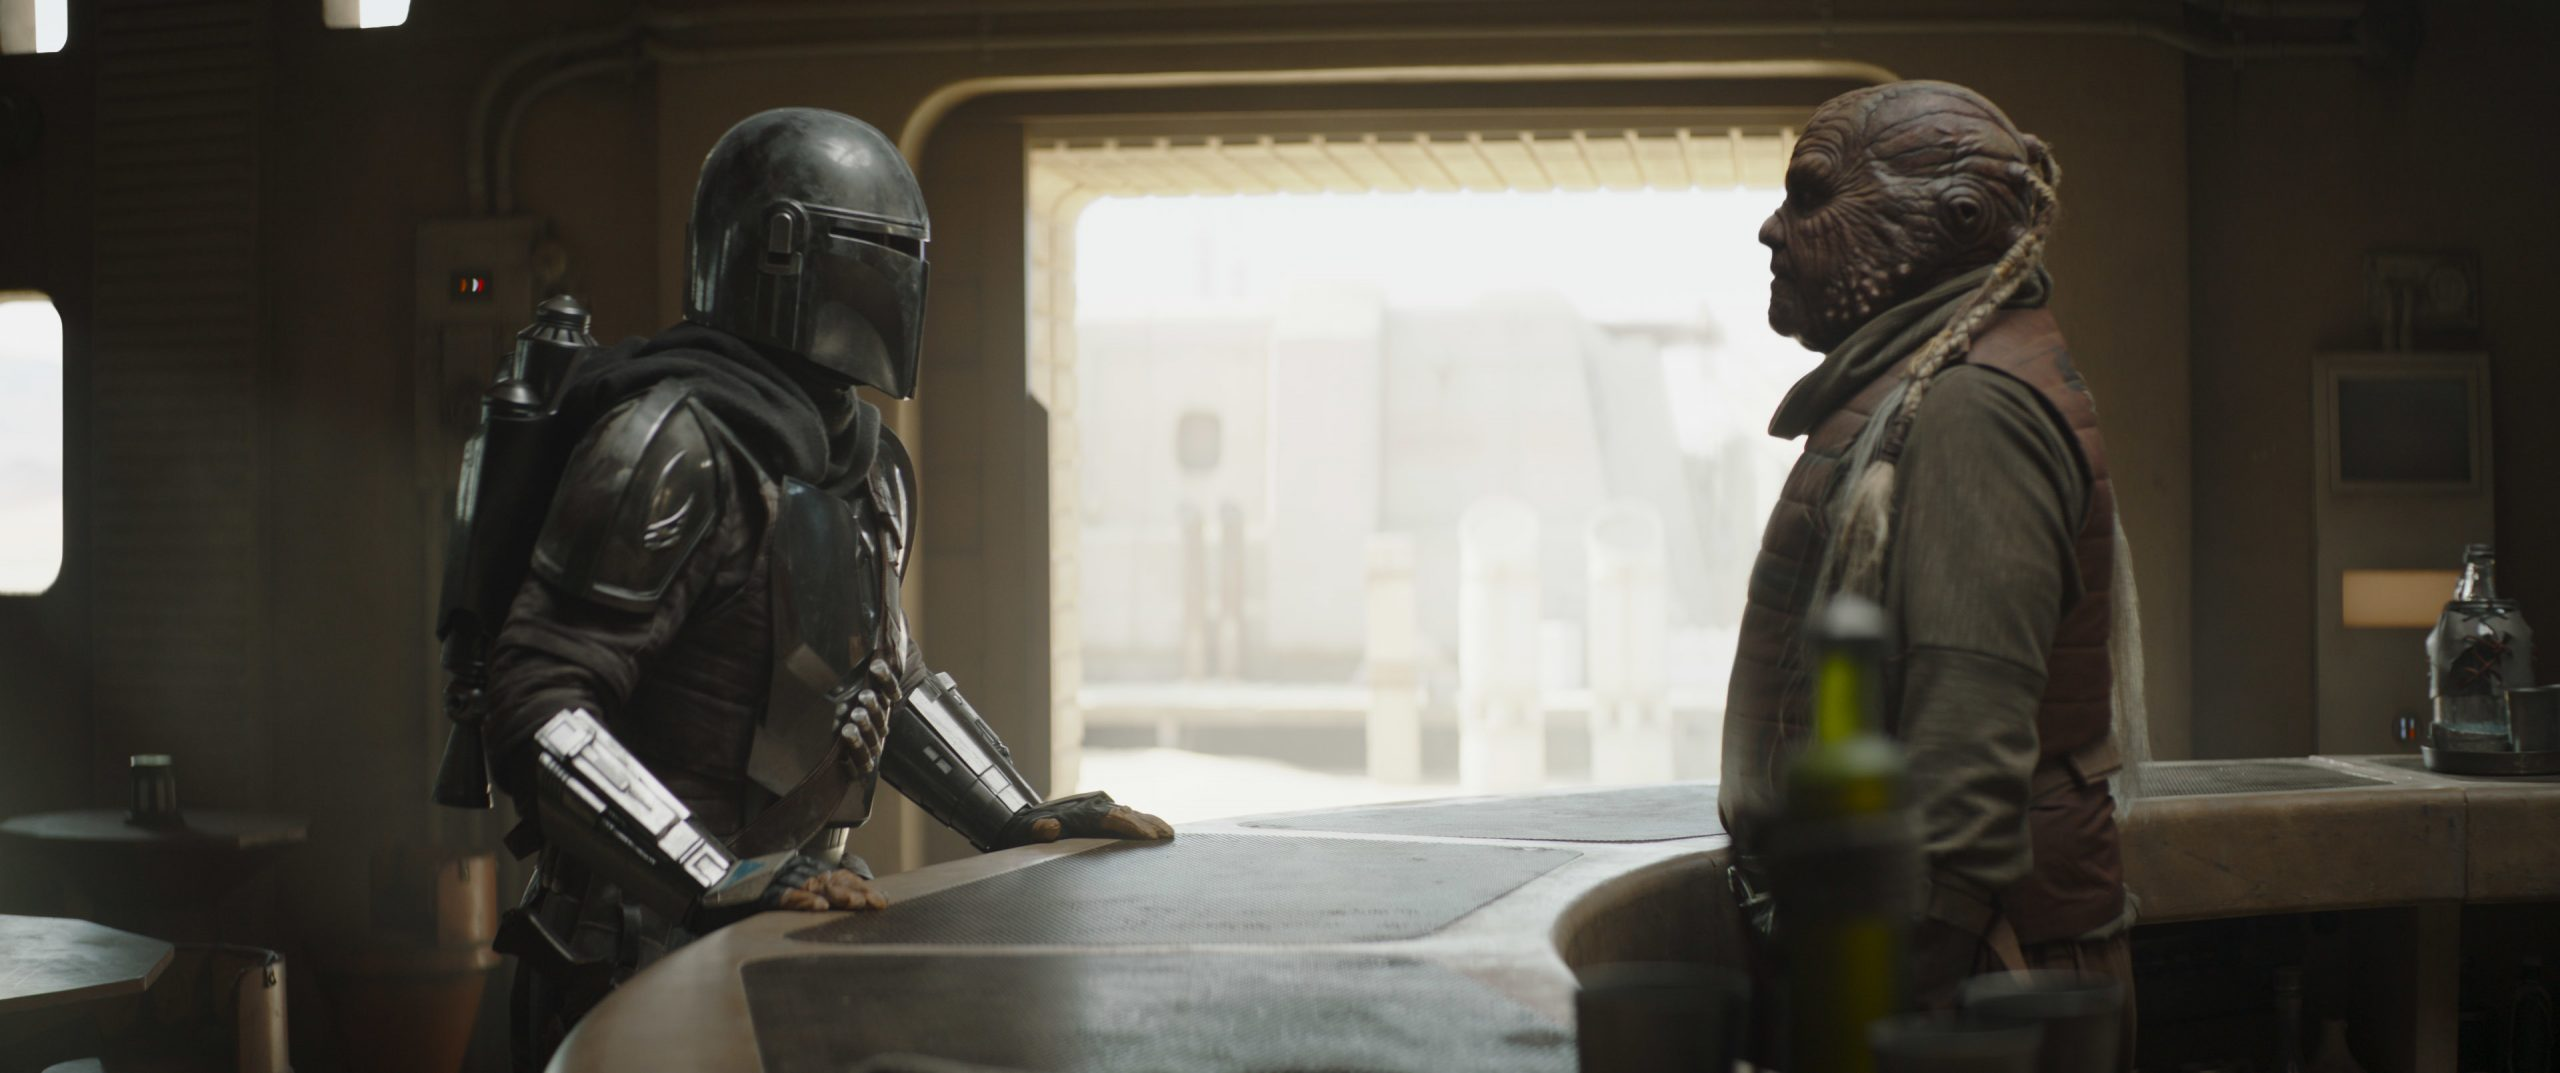 The Mandalorian (Pedro Pascal) and the Weequay bartender on Tatooine.